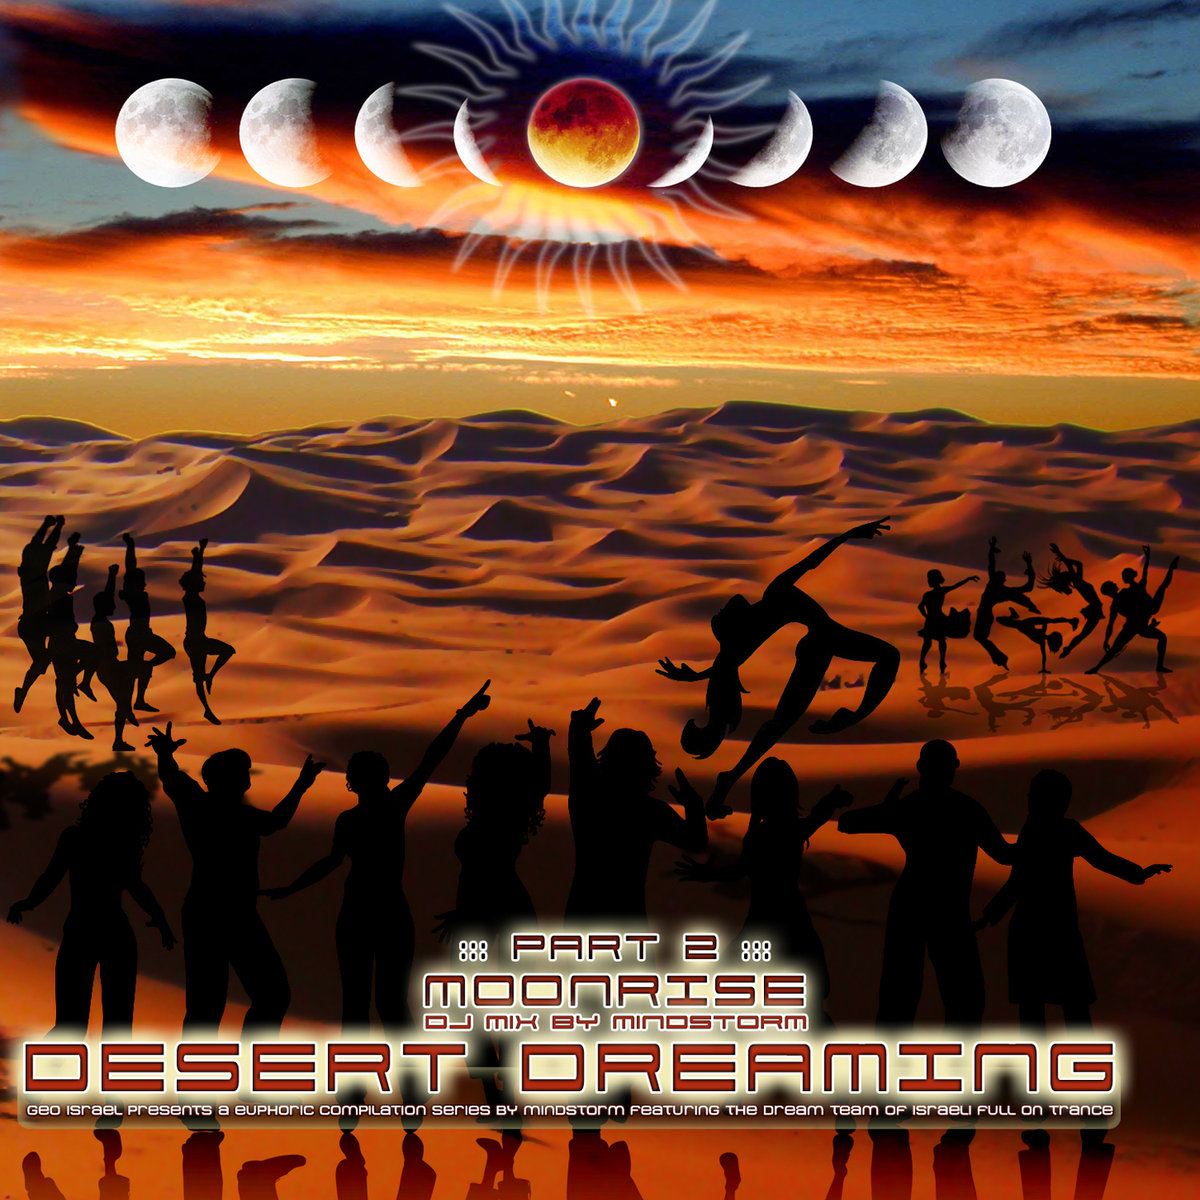 1200 Micrograms - Rock Into The Future (Safi Connection Remix) @ 'Various Artists - Desert Dreaming Part 2: Moonrise (DJ Mix by Mindstorm)' album (electronic, goa)